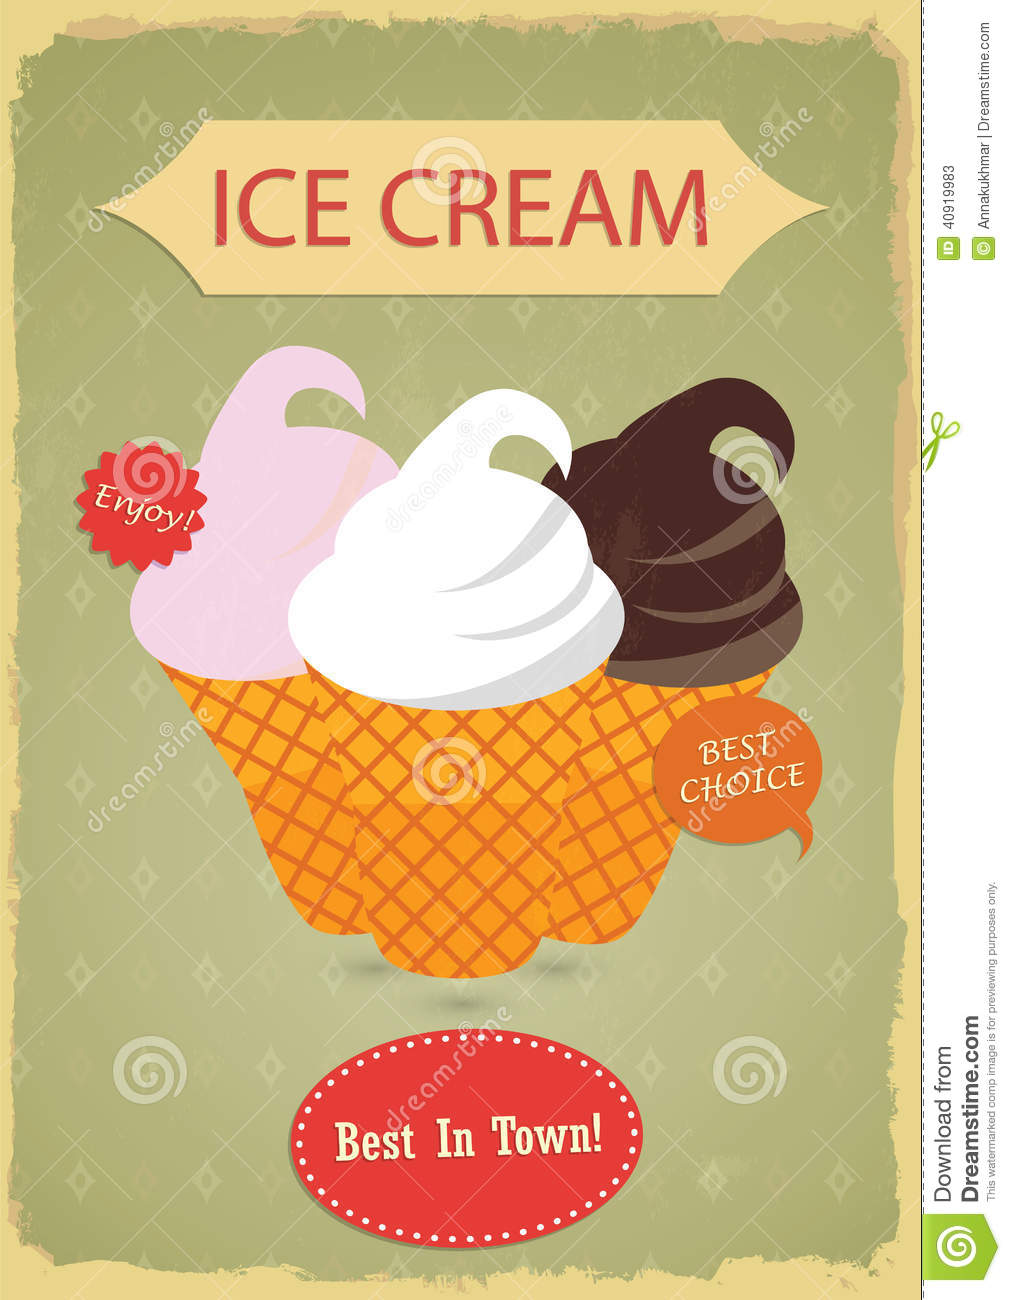 vintage ice cream clipart - photo #30